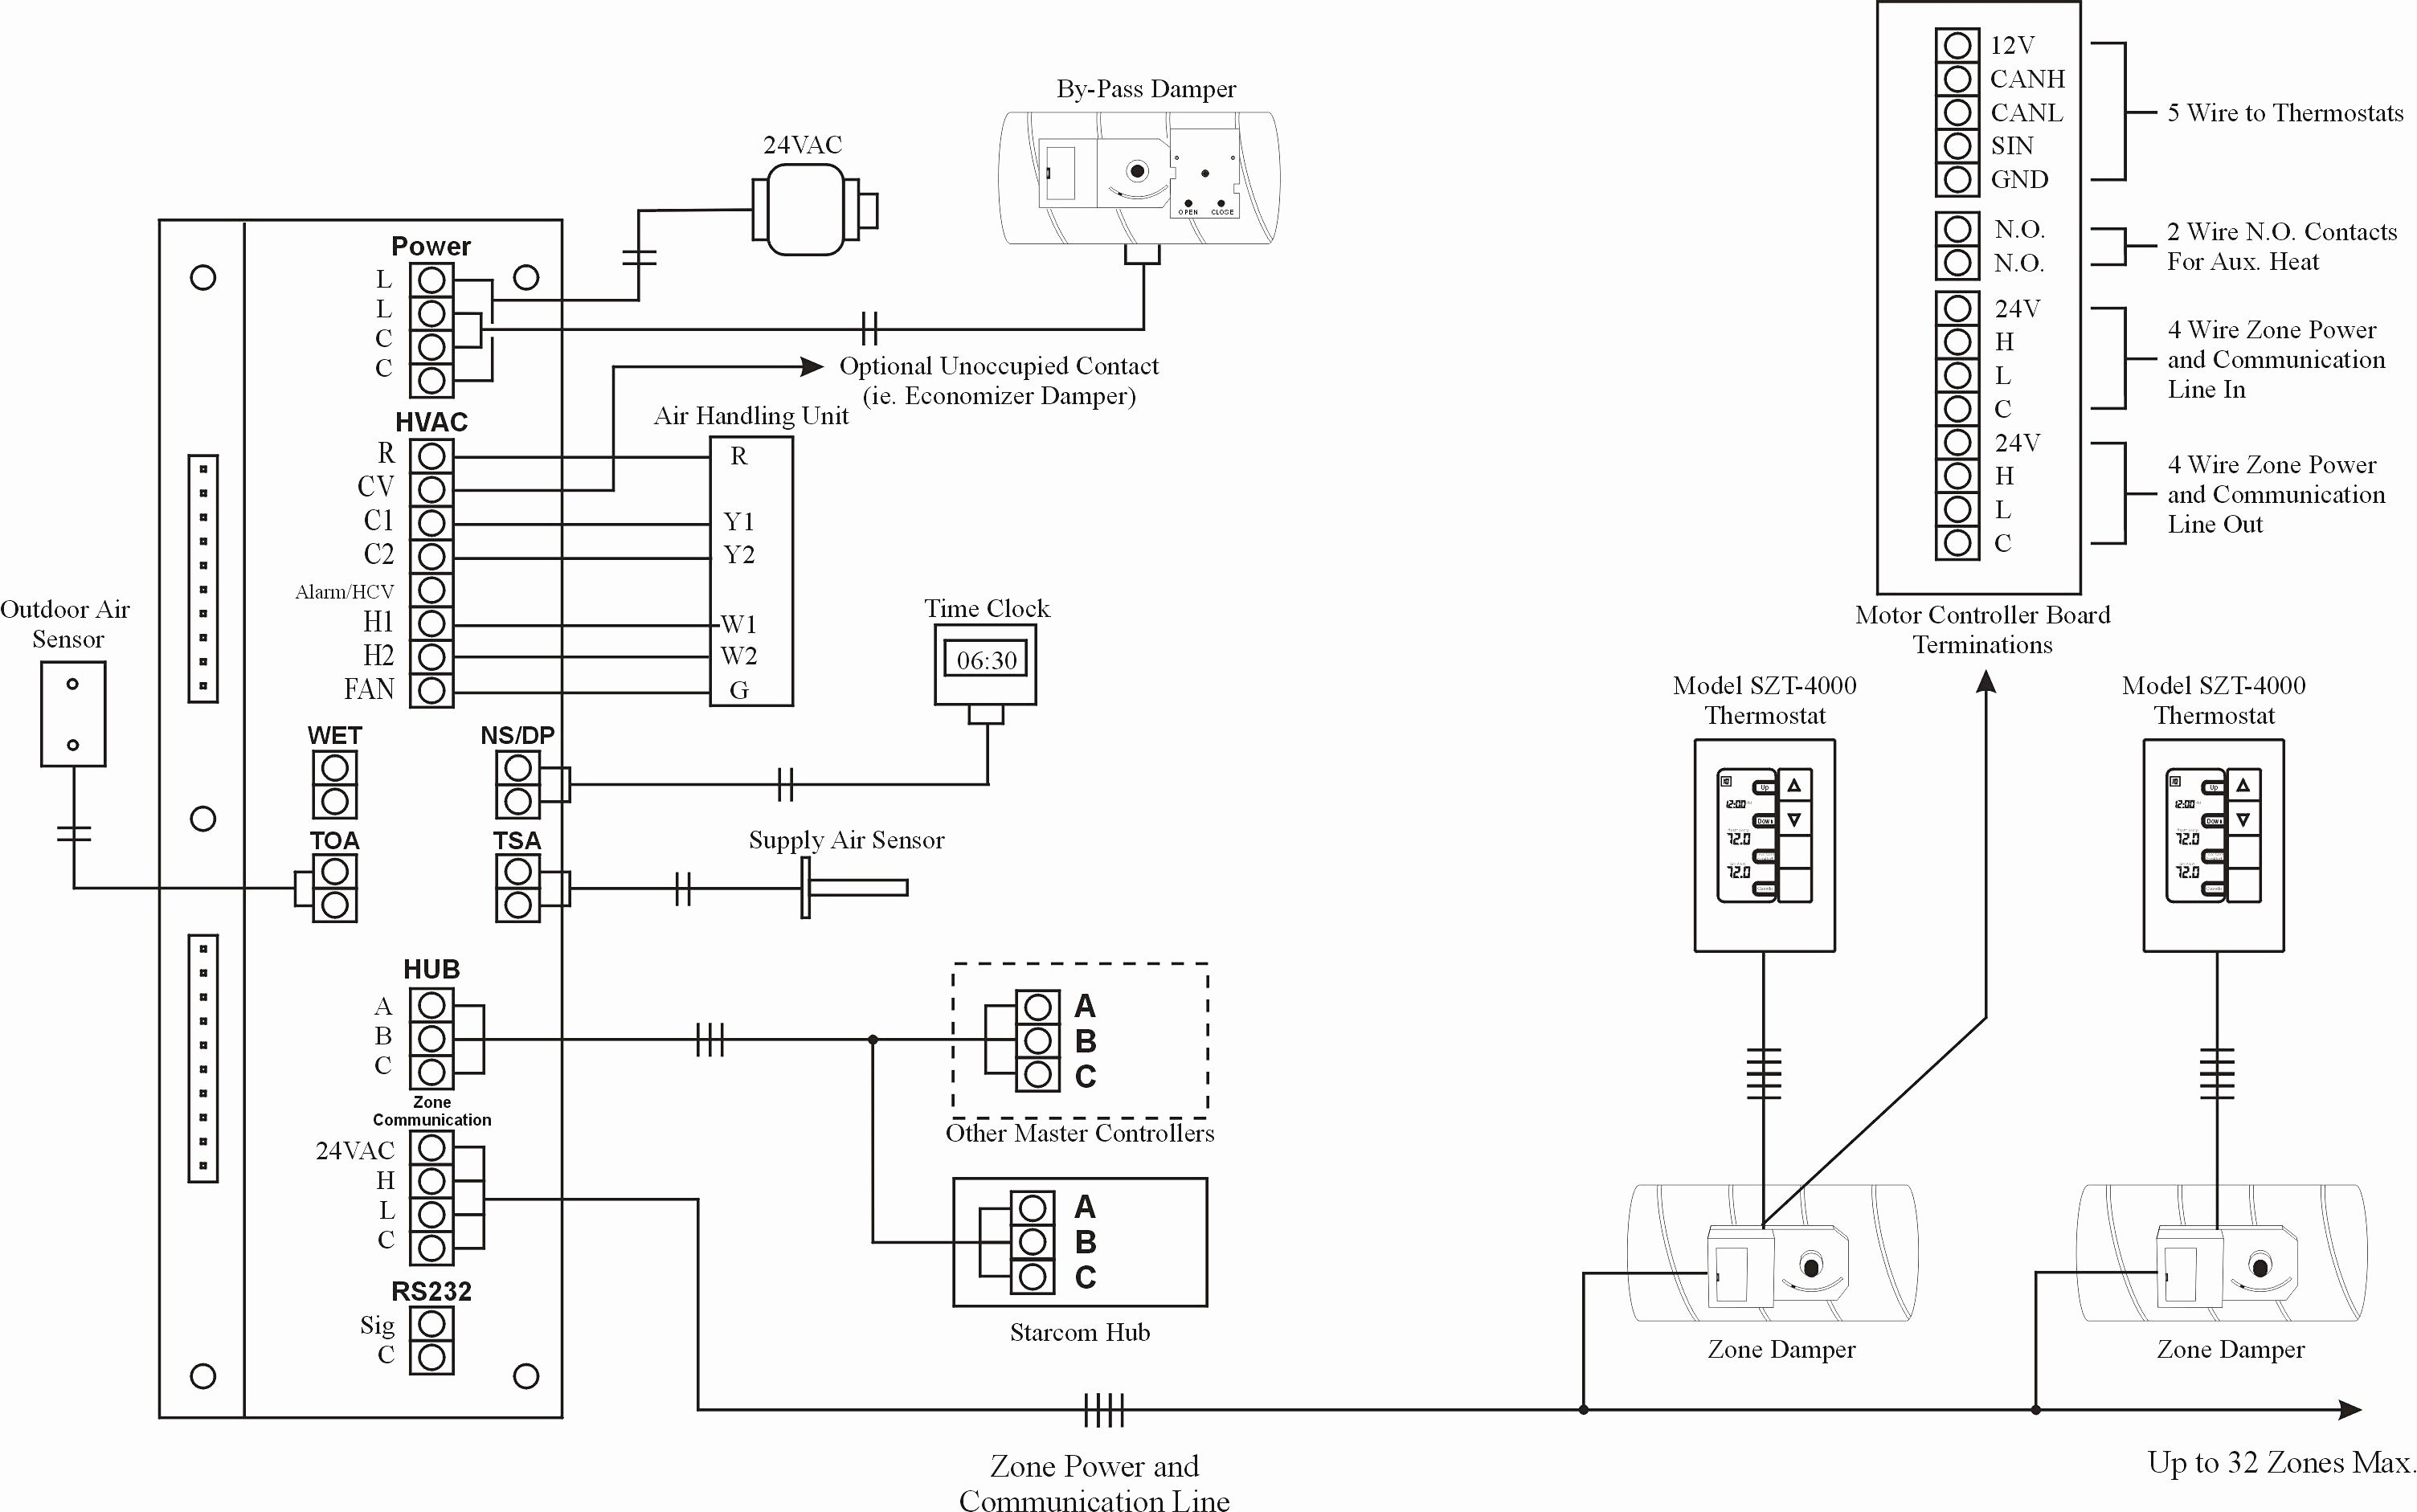 Striker200 Guitar Wiring Diagrams | Schematic Diagram - Hsh Wiring Diagram